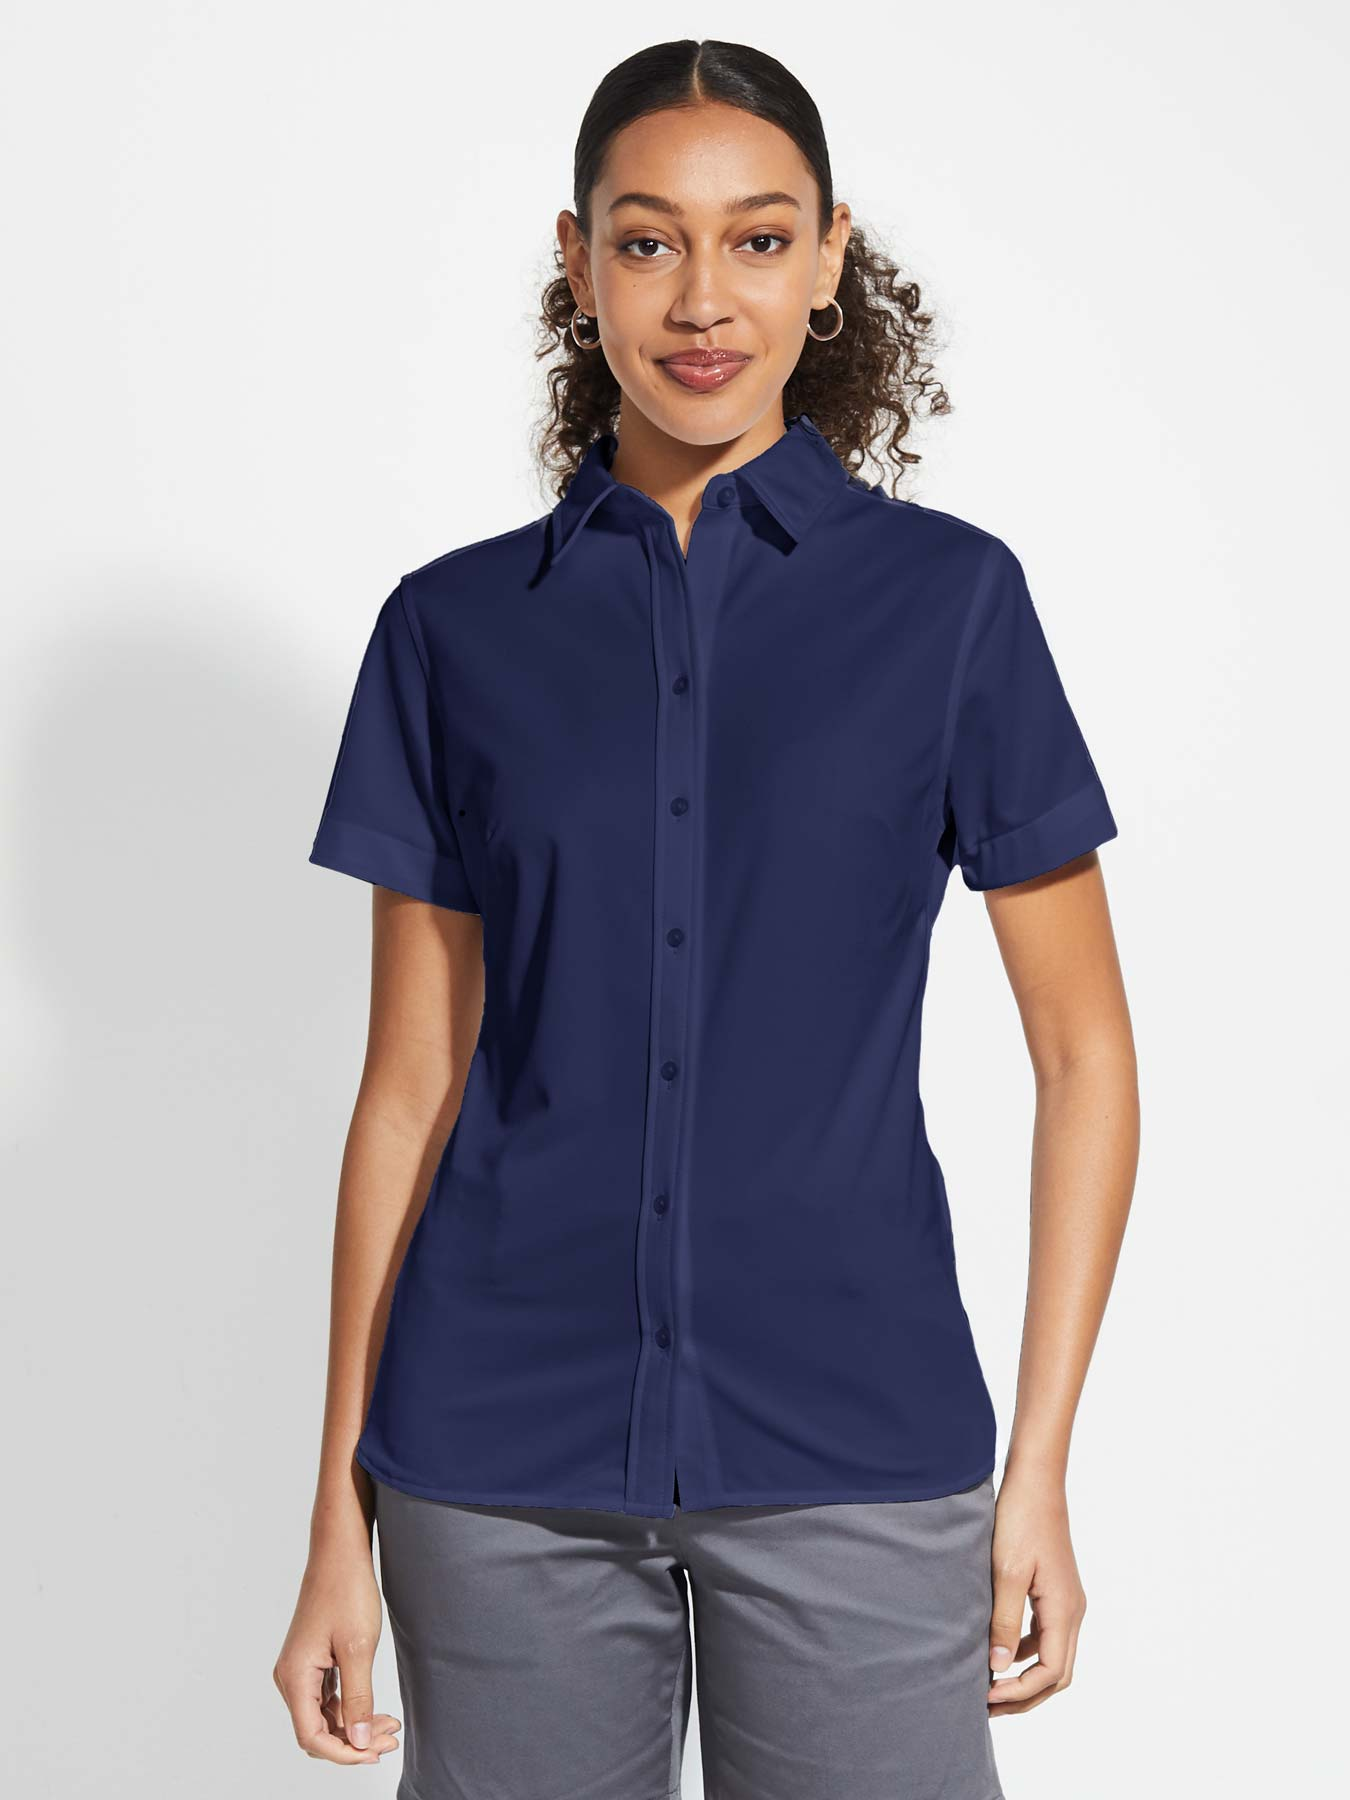 Ladies' X1 Performance Knit Shirt Short Sleeve - Dark Navy